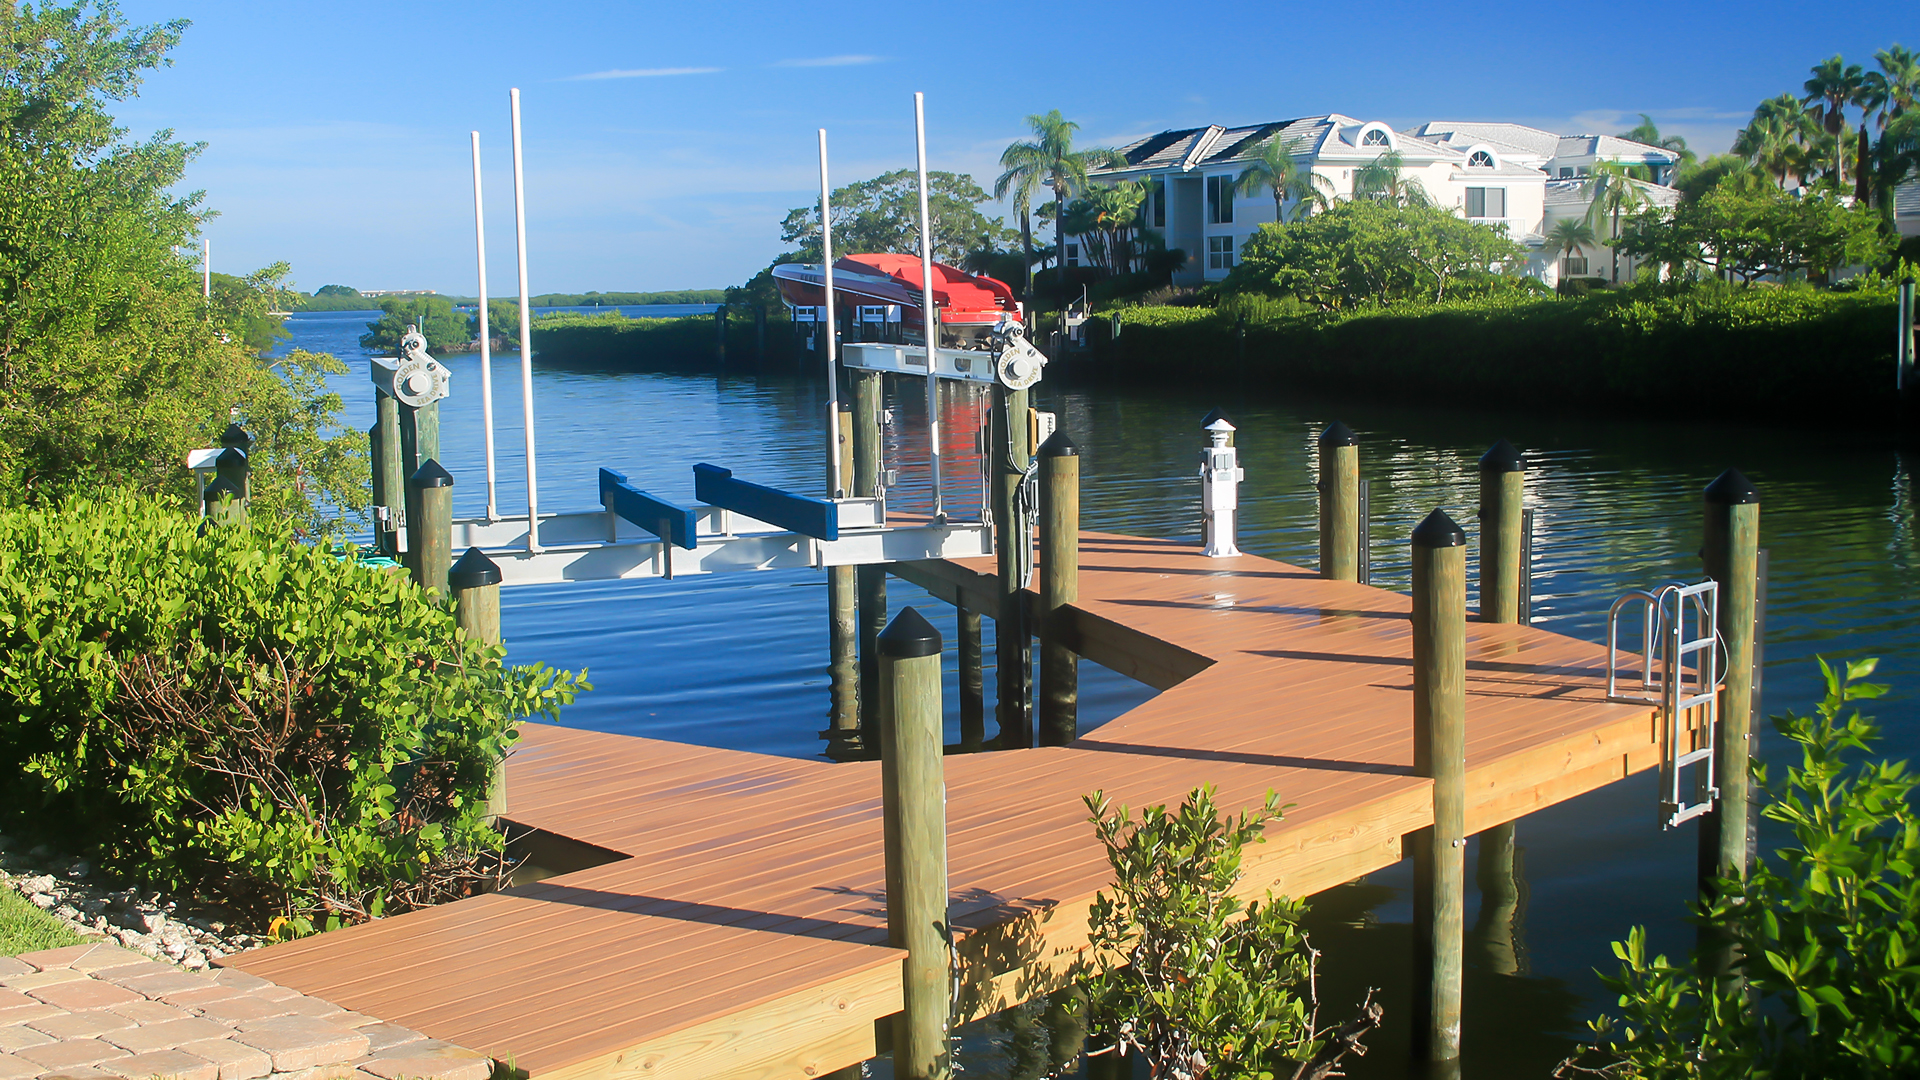 Trex Decking at Duncan Seawall for Your Dock Construction Project